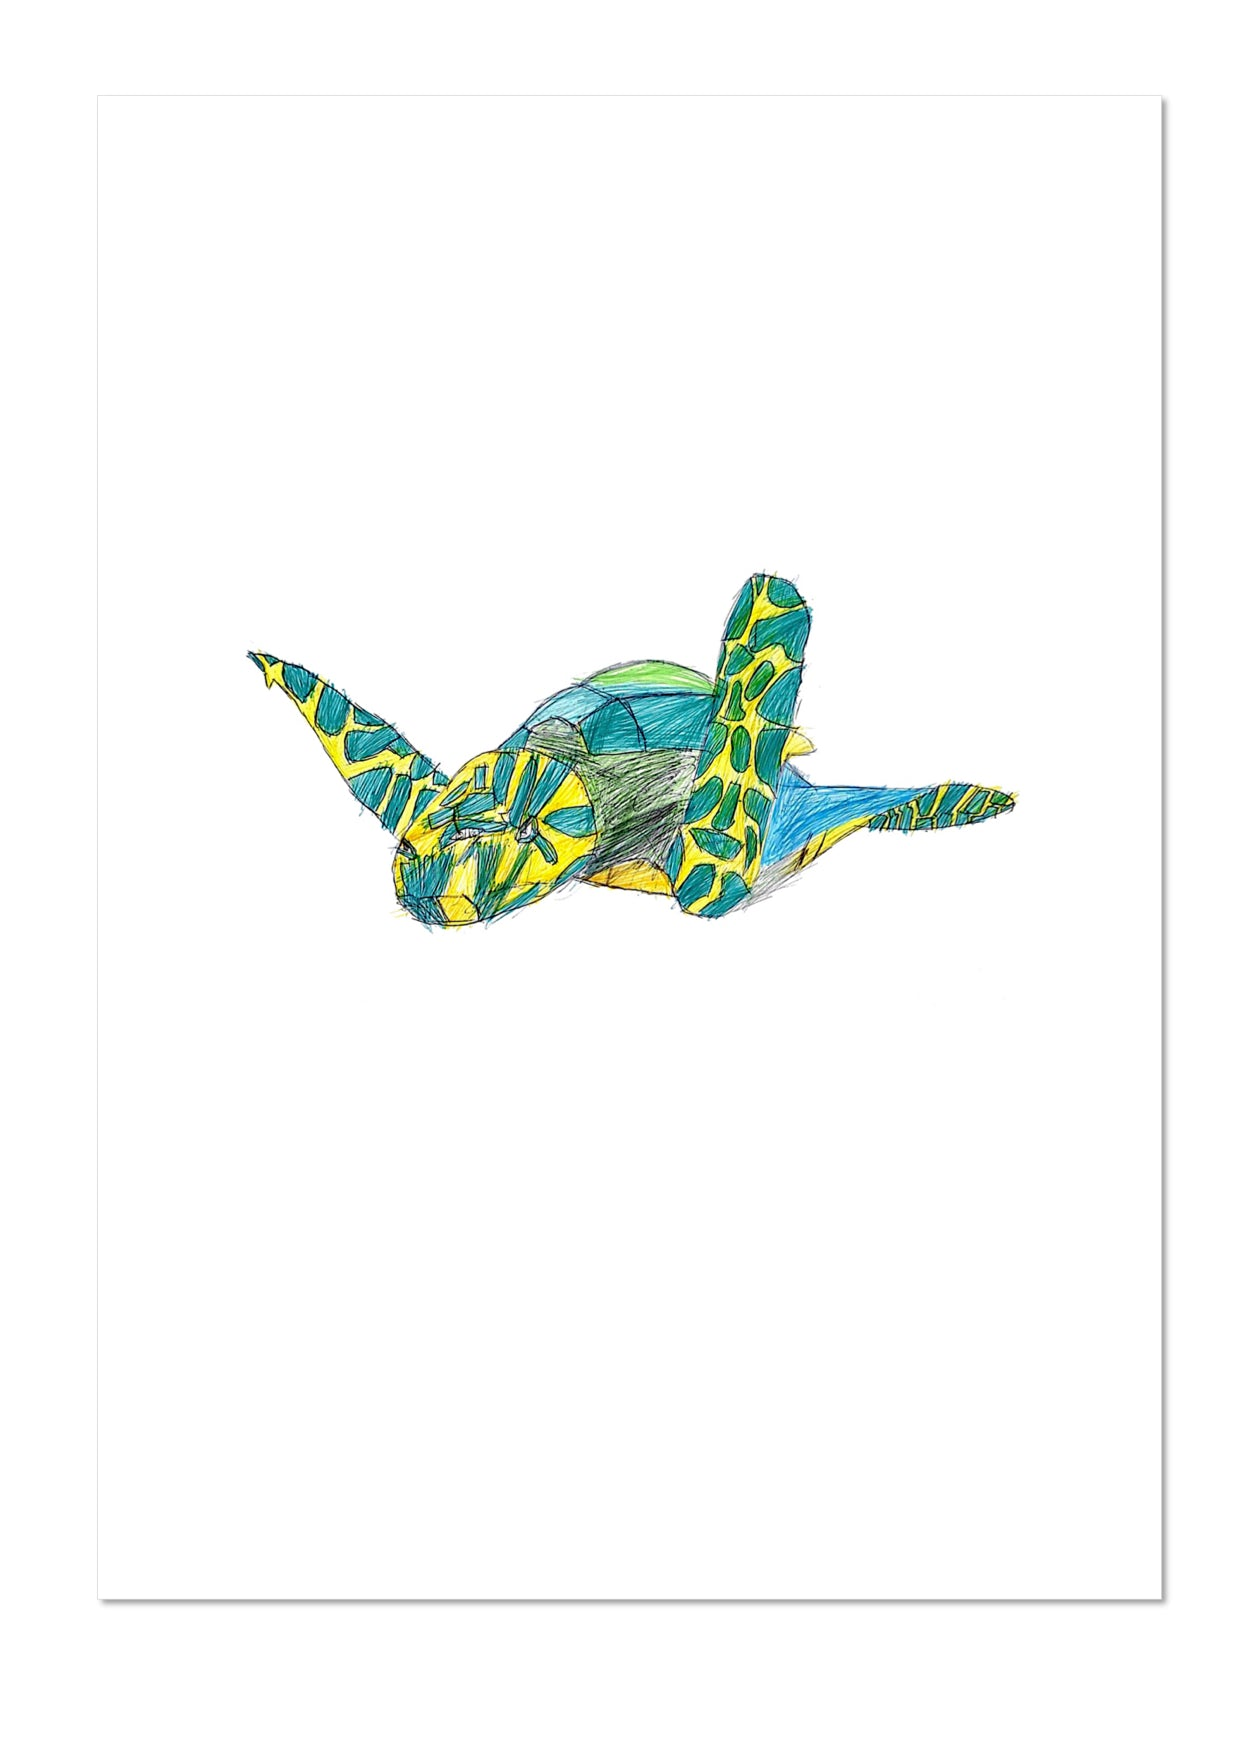 Turtle by Daniel Exhibition Print